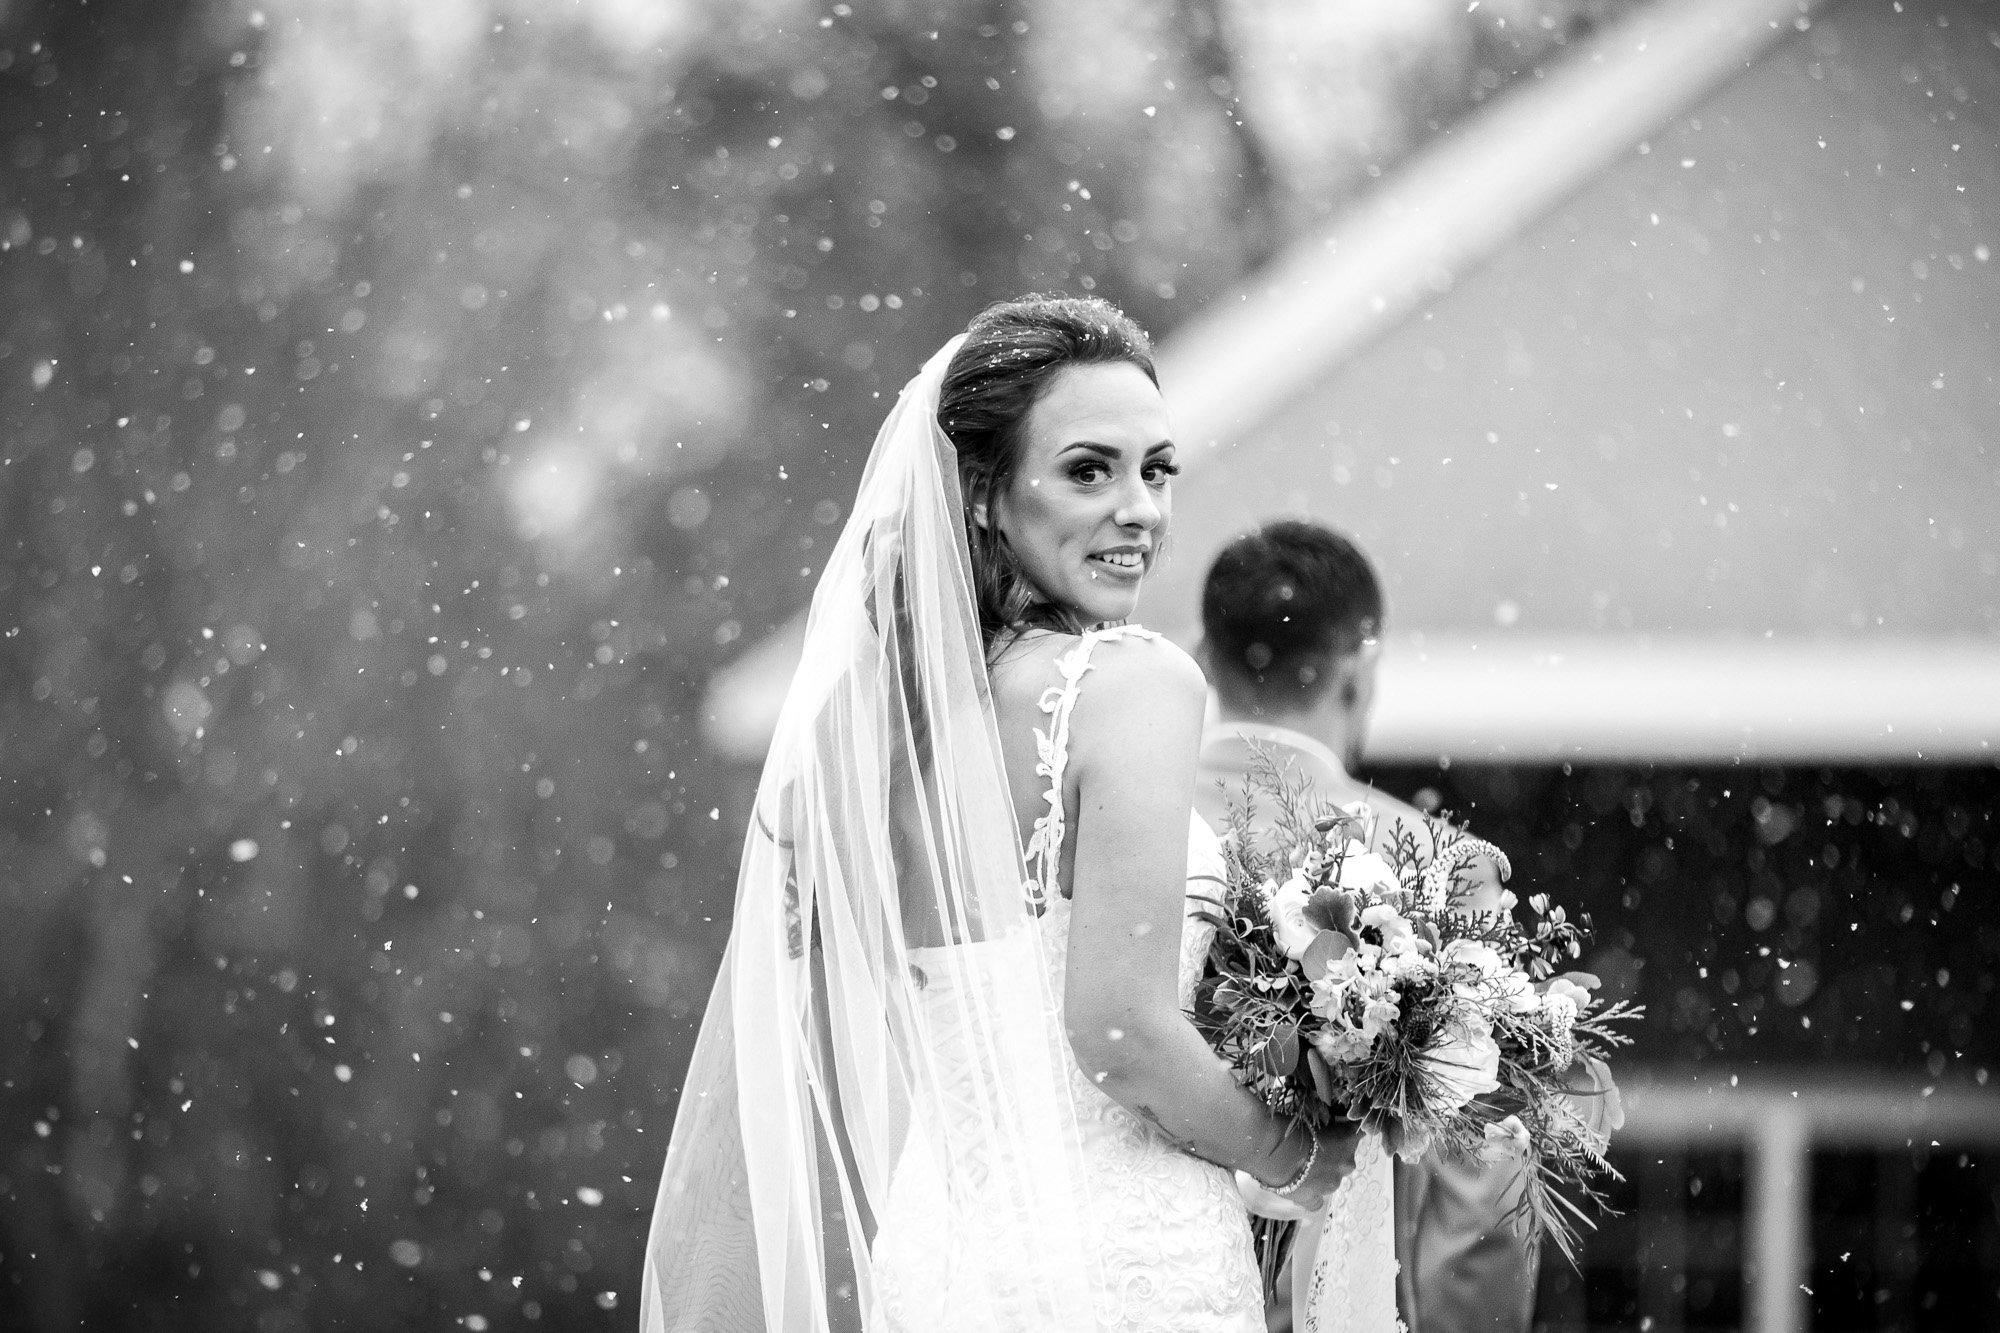 LindseyDerek-0322-lowres-MA-wedding-photographer-2